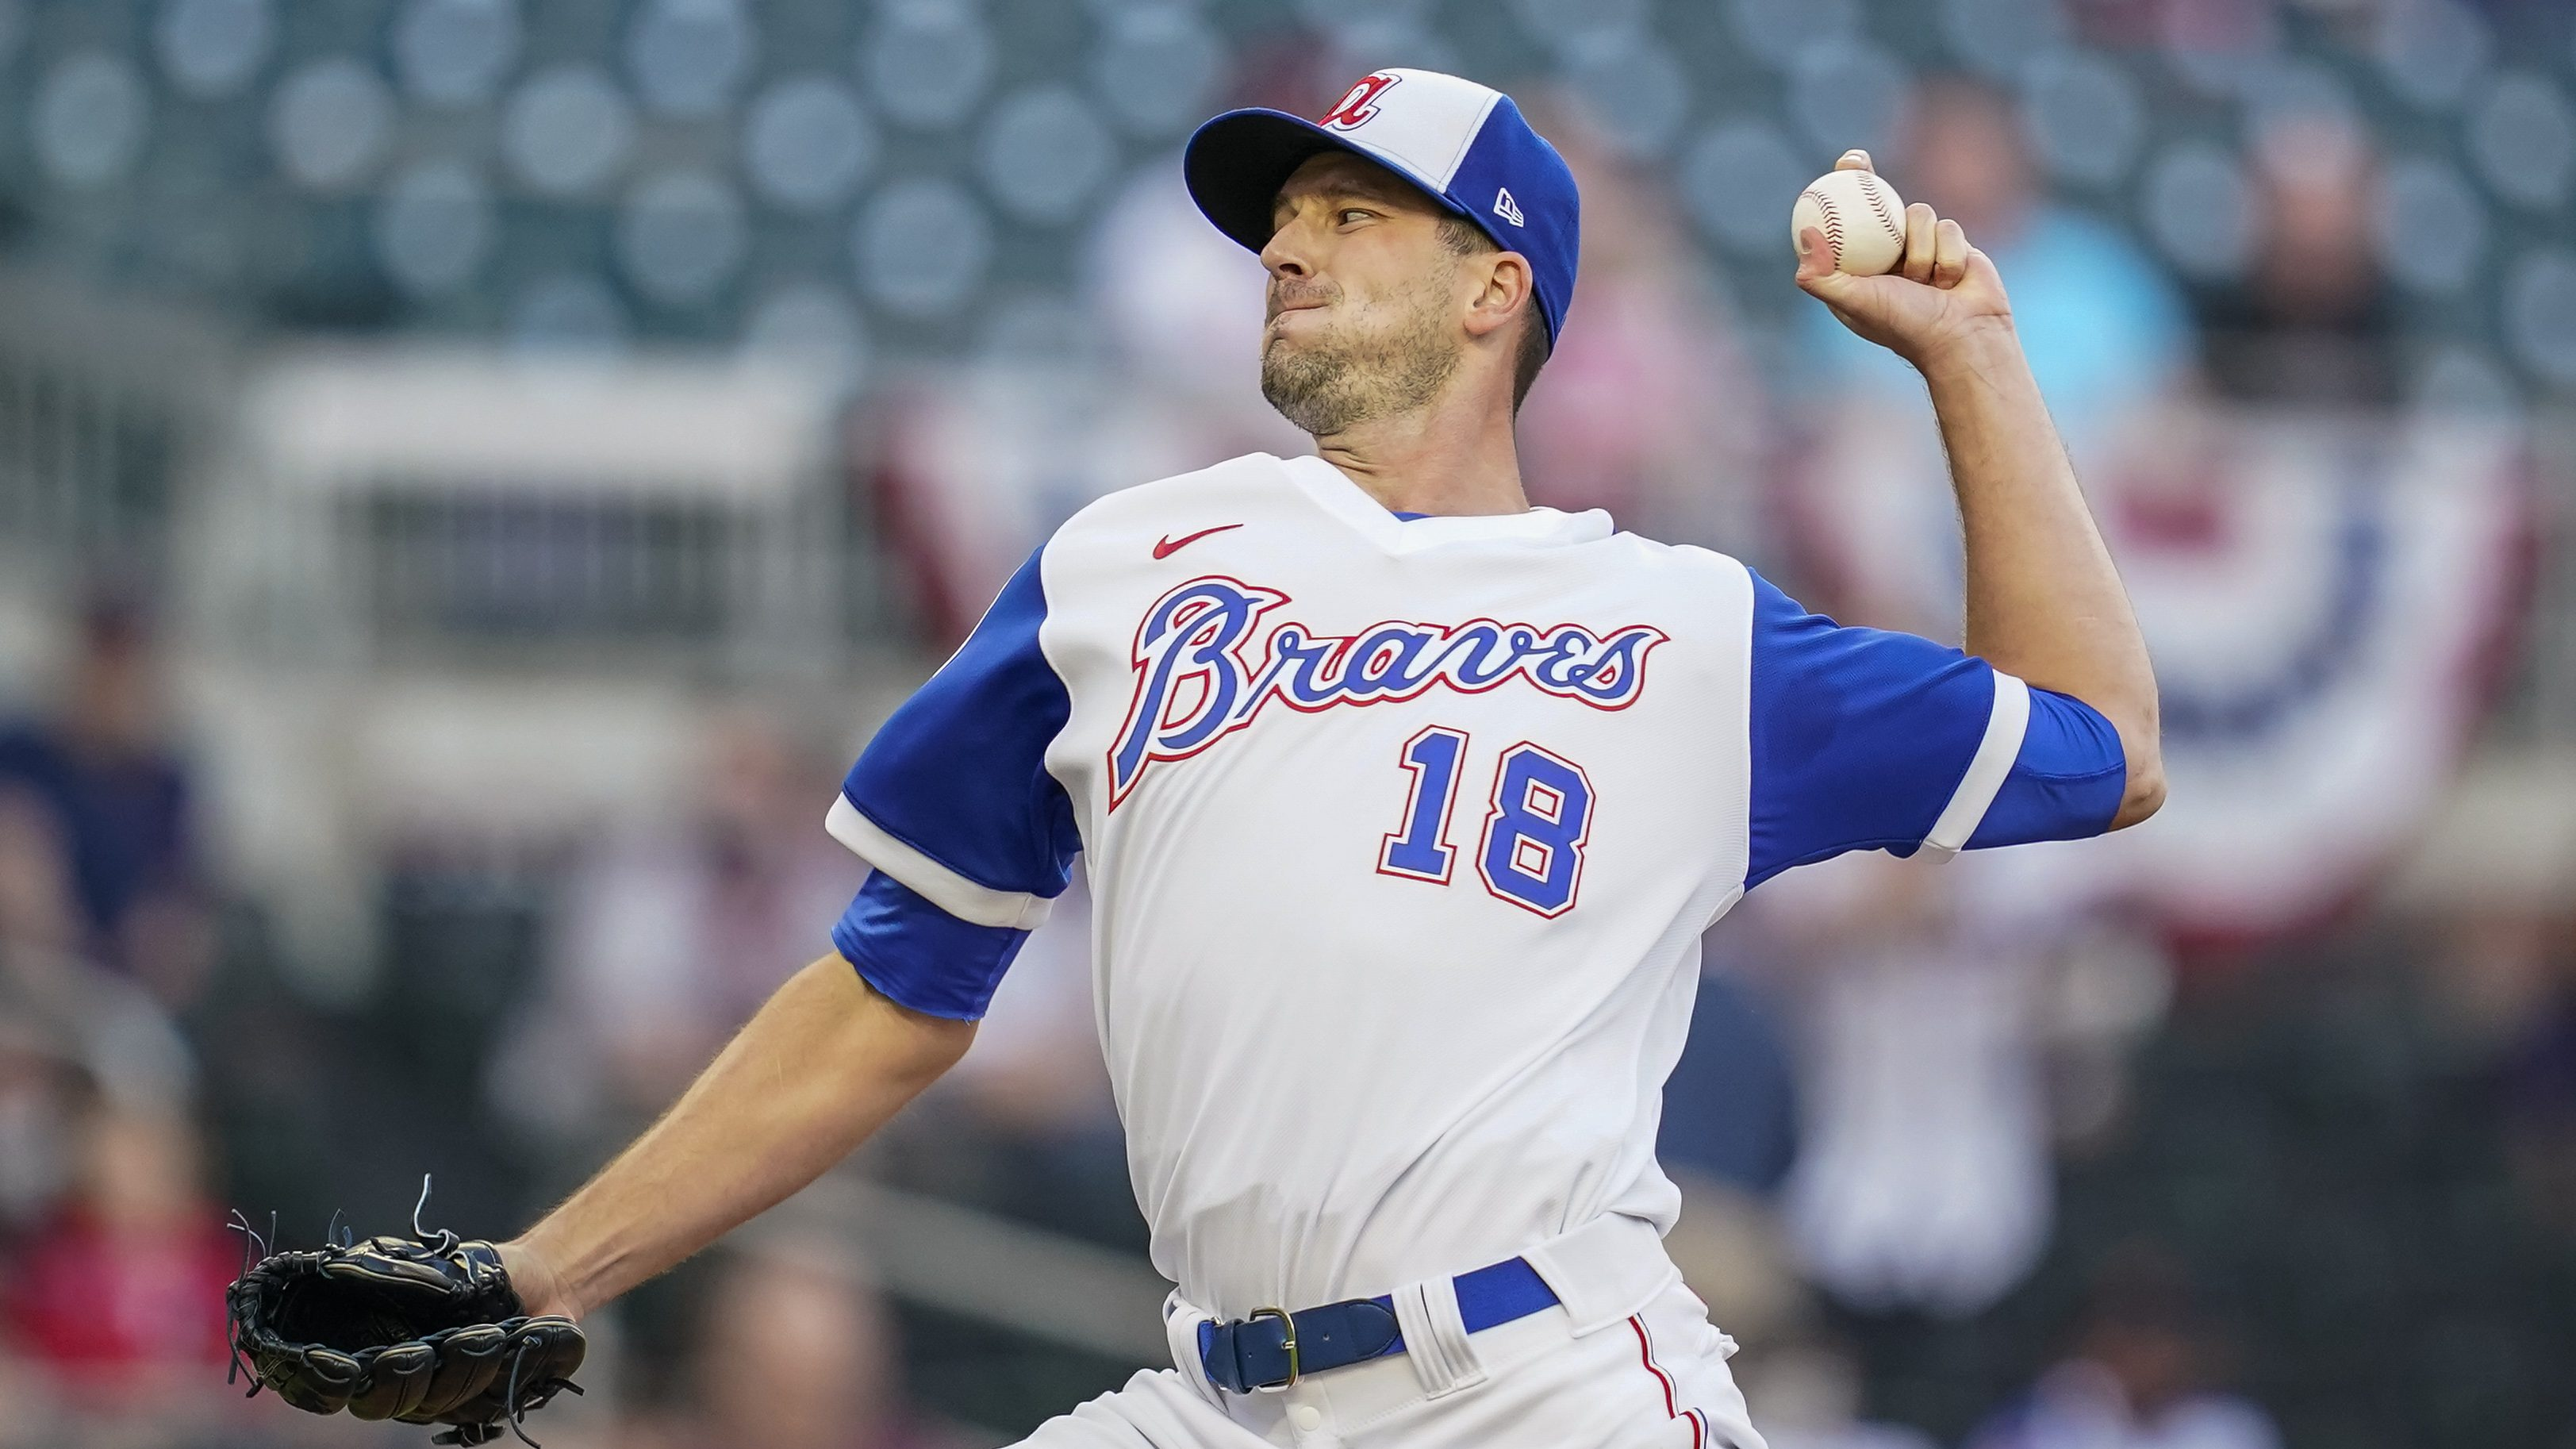 Braves scratch Drew Smyly, add to 10-day IL with forearm pain - MLB | NBC  Sports